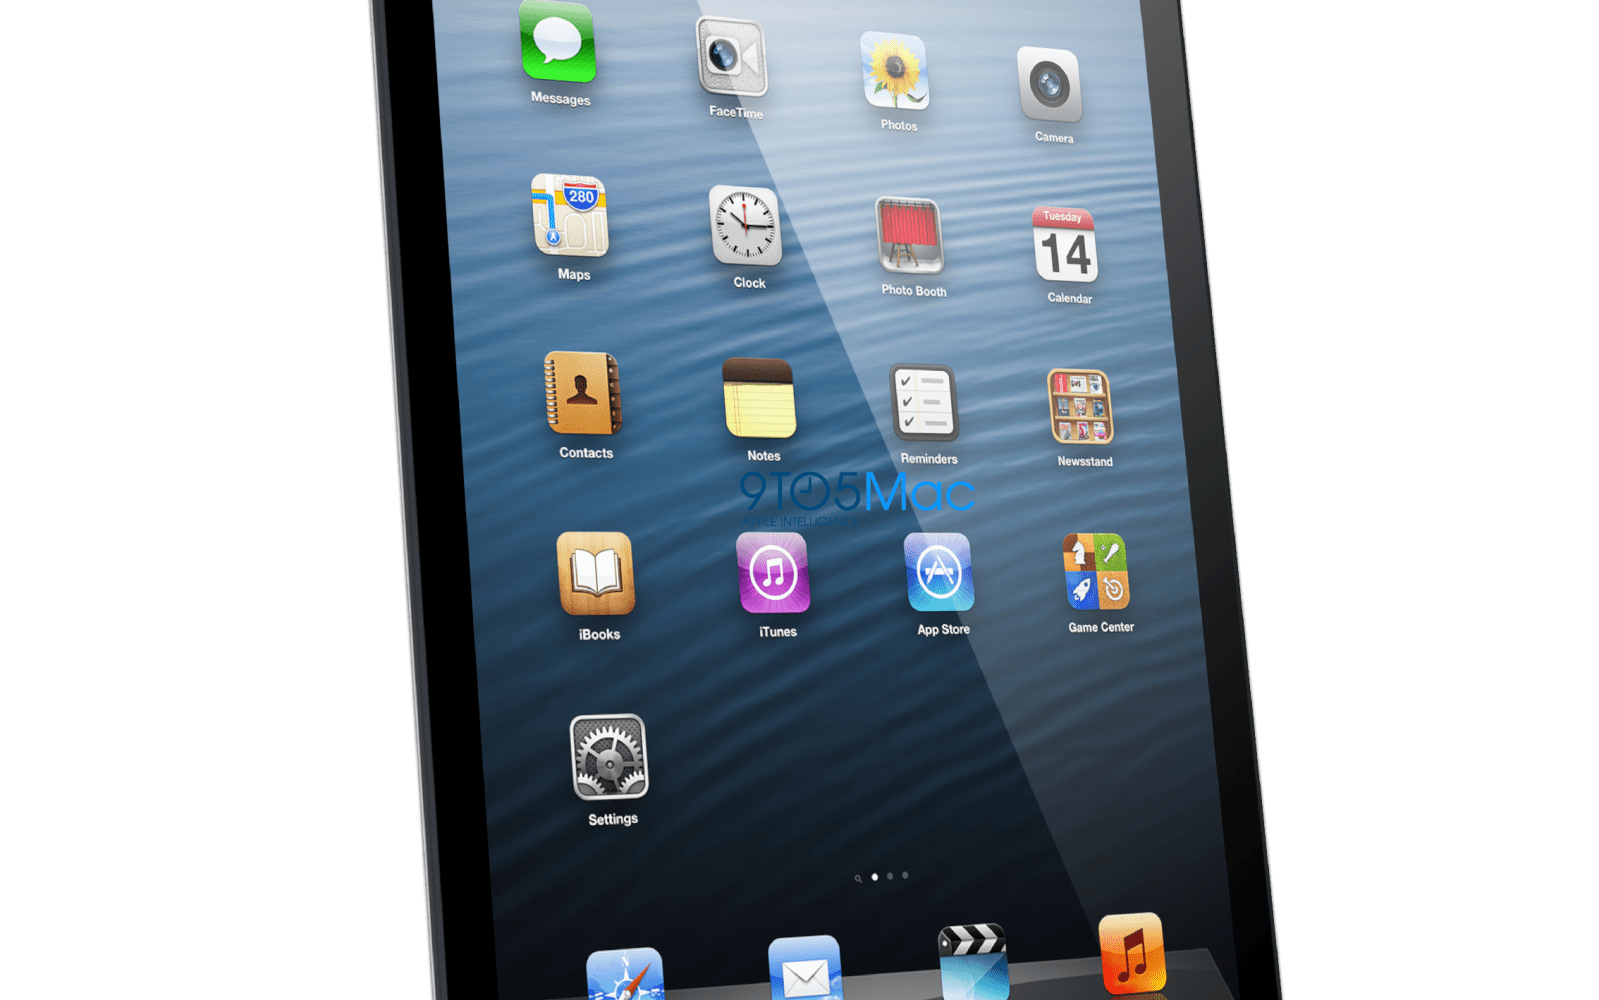 WSJ: Apple to double Kindle Fire numbers with 10M iPad mini